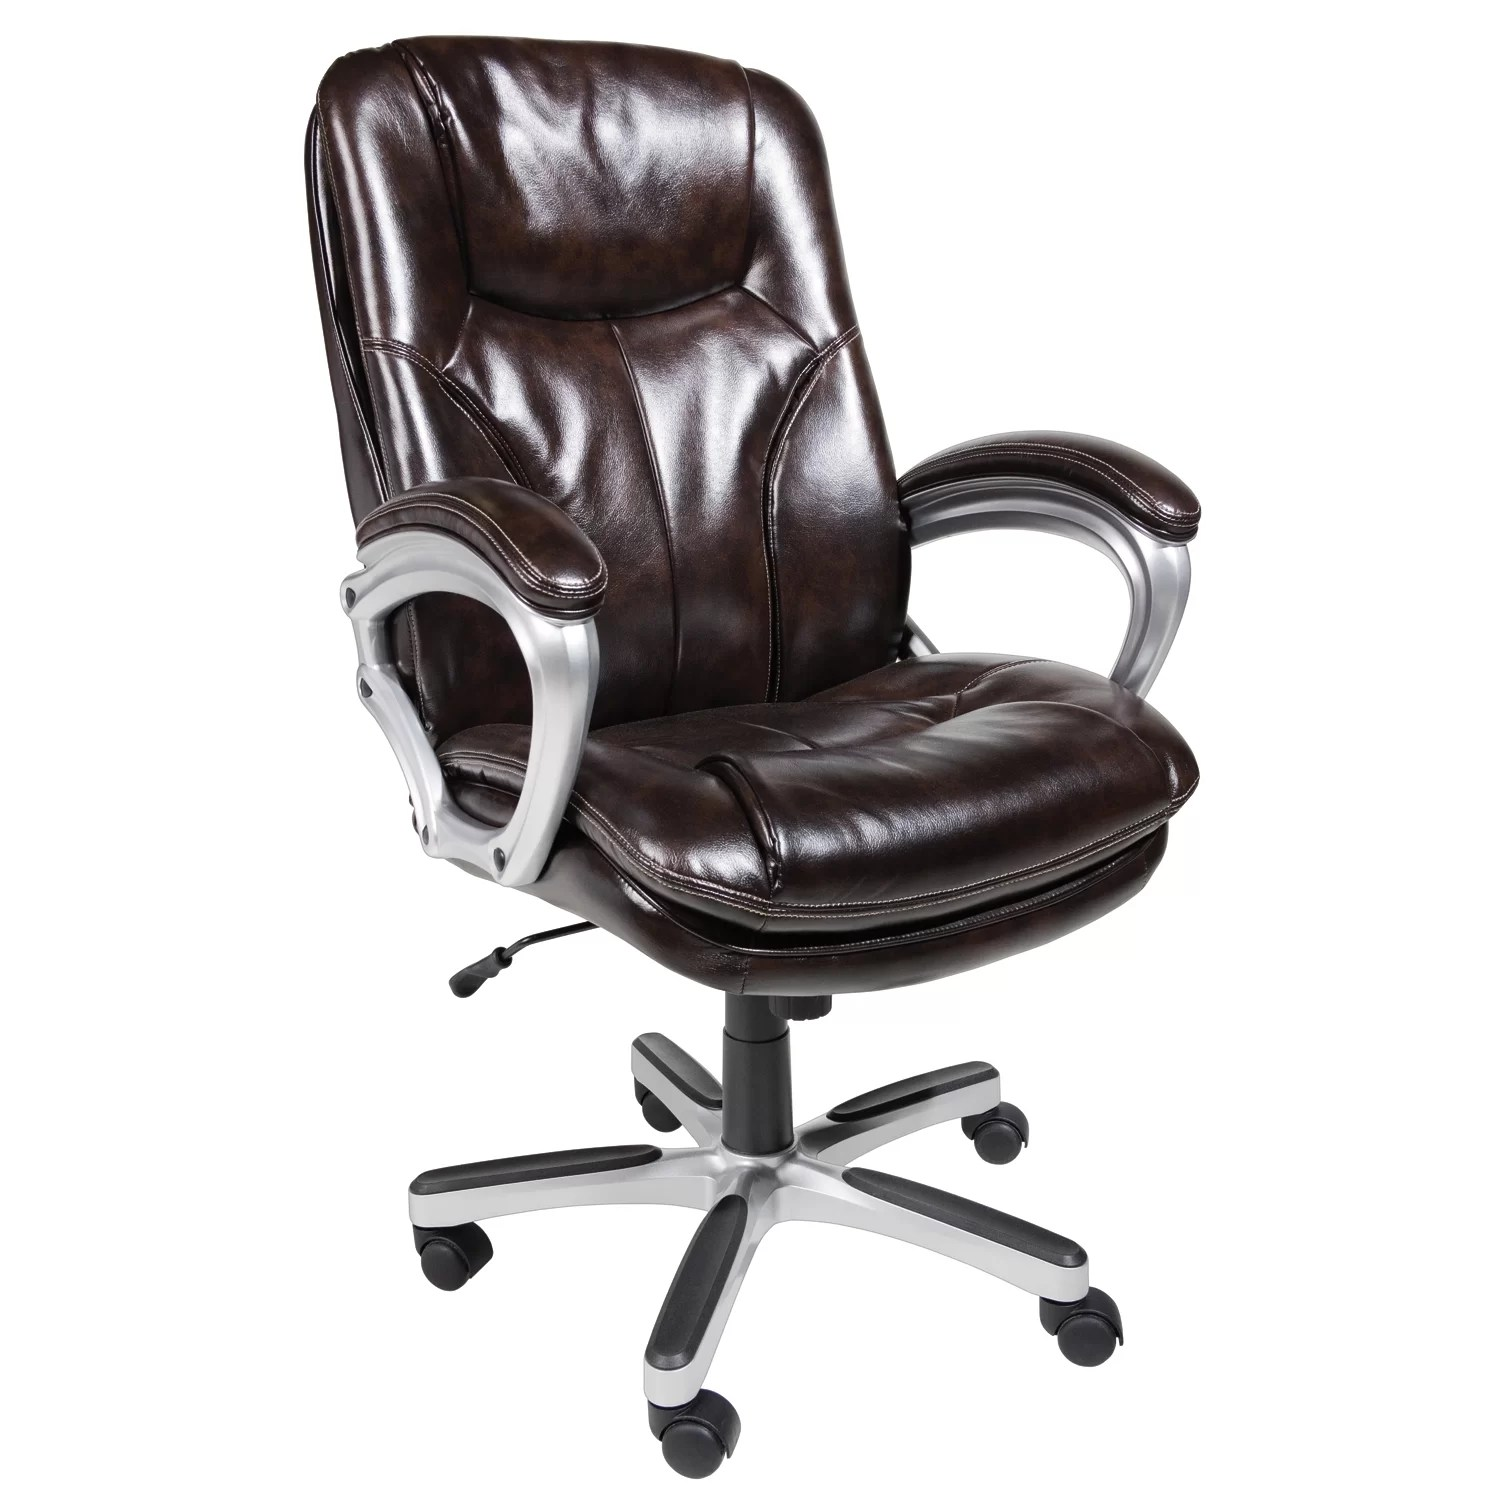 Tall Chair Serta At Home Big And Tall Executive Chair And Reviews Wayfair